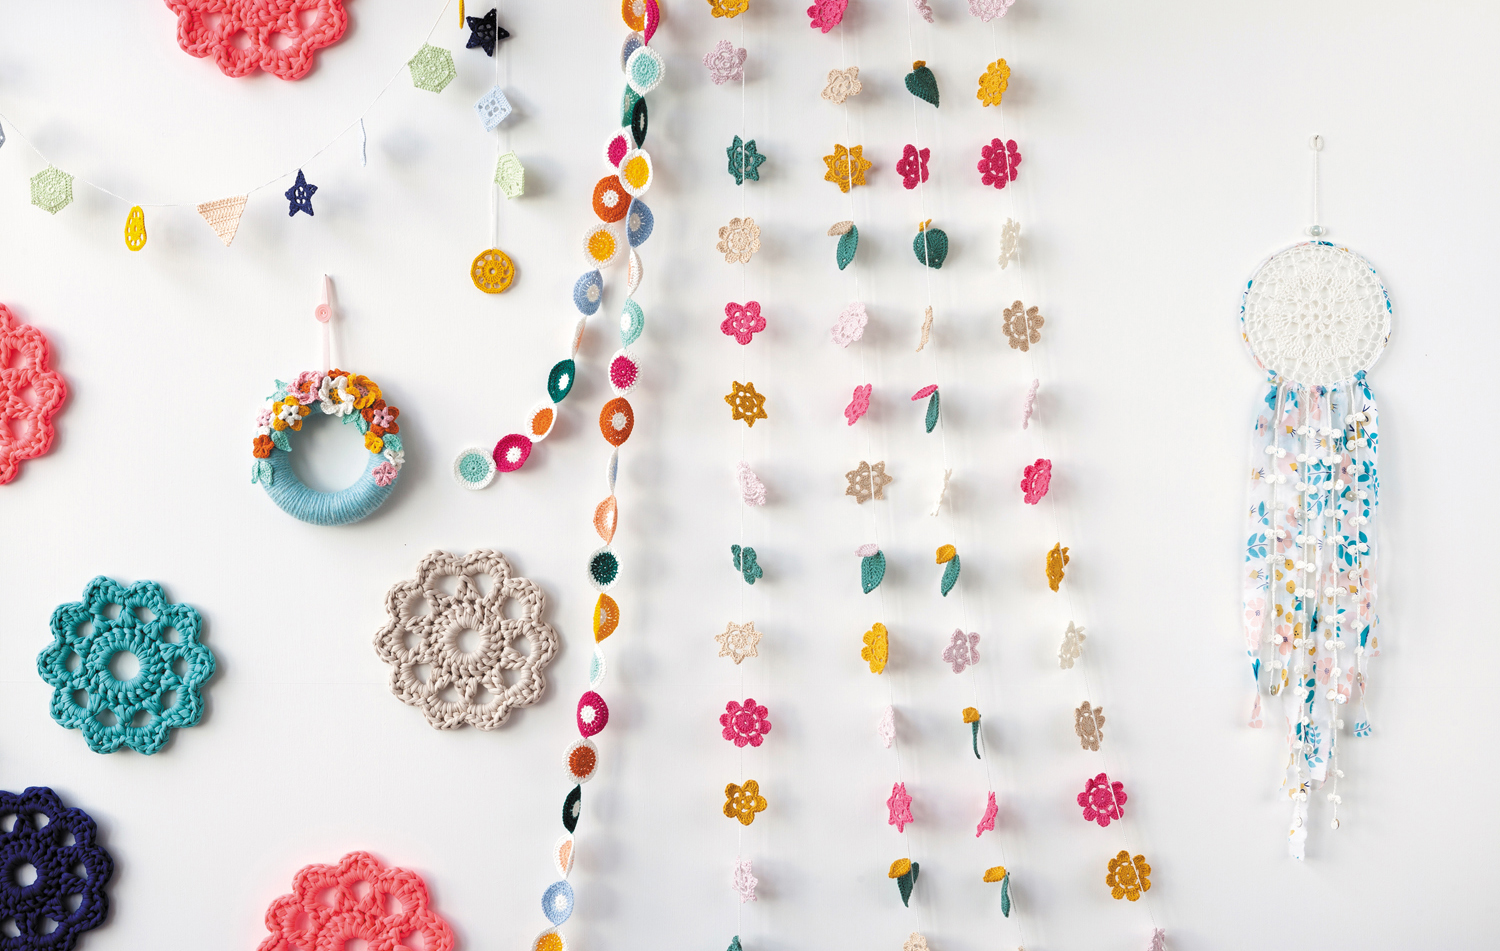 Decorations from Crochet Home by Emma Lamb | Crochet designs and styling by Emma Lamb / Photography by Jason M Jenkins